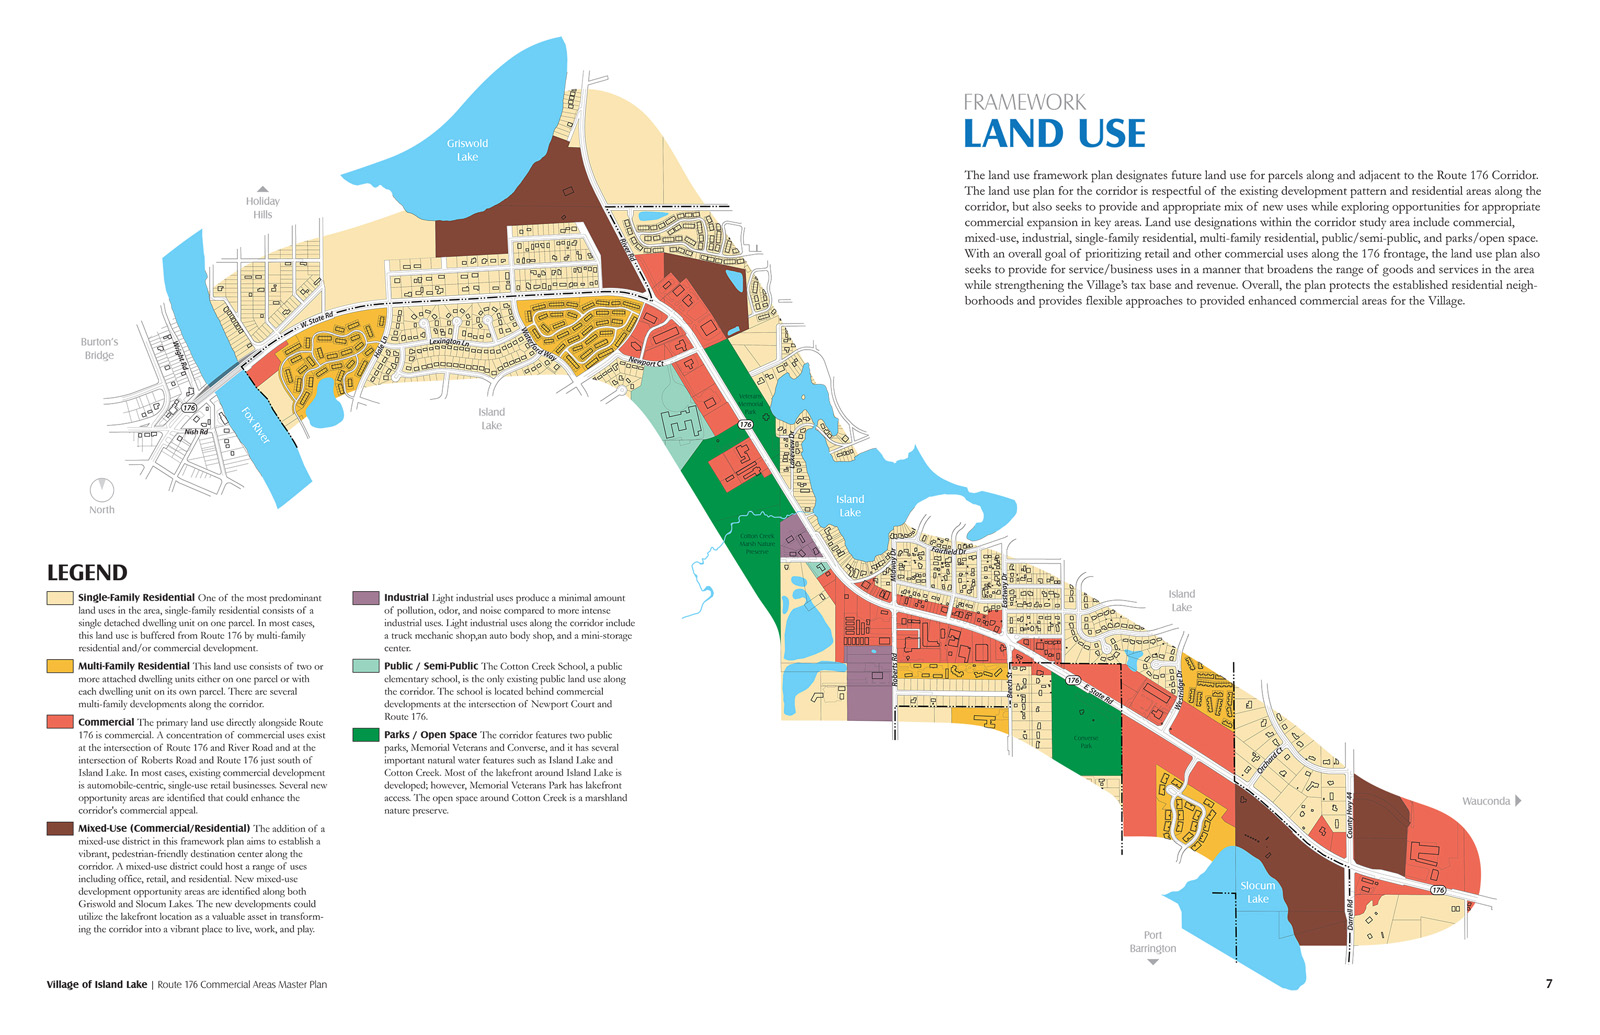 http://www.hlplanning.com/portals/wp-content/uploads/2014/10/Commercial-Areas-Master-Plan-7.jpg